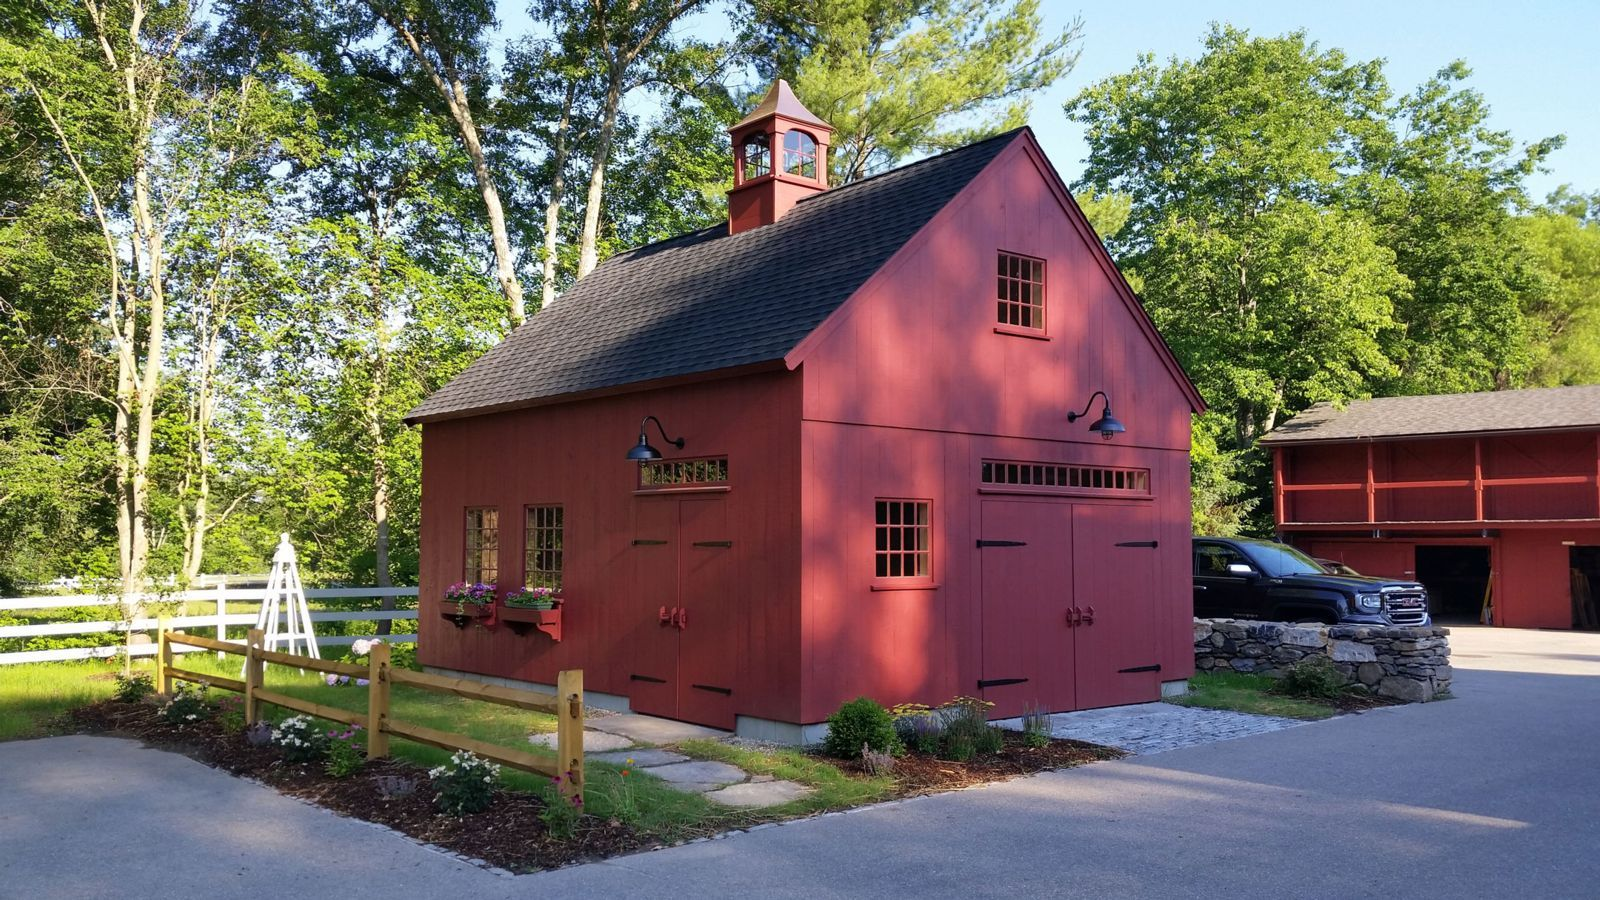 New England Style Barns Post Beam Garden Sheds Country Carriage Houses